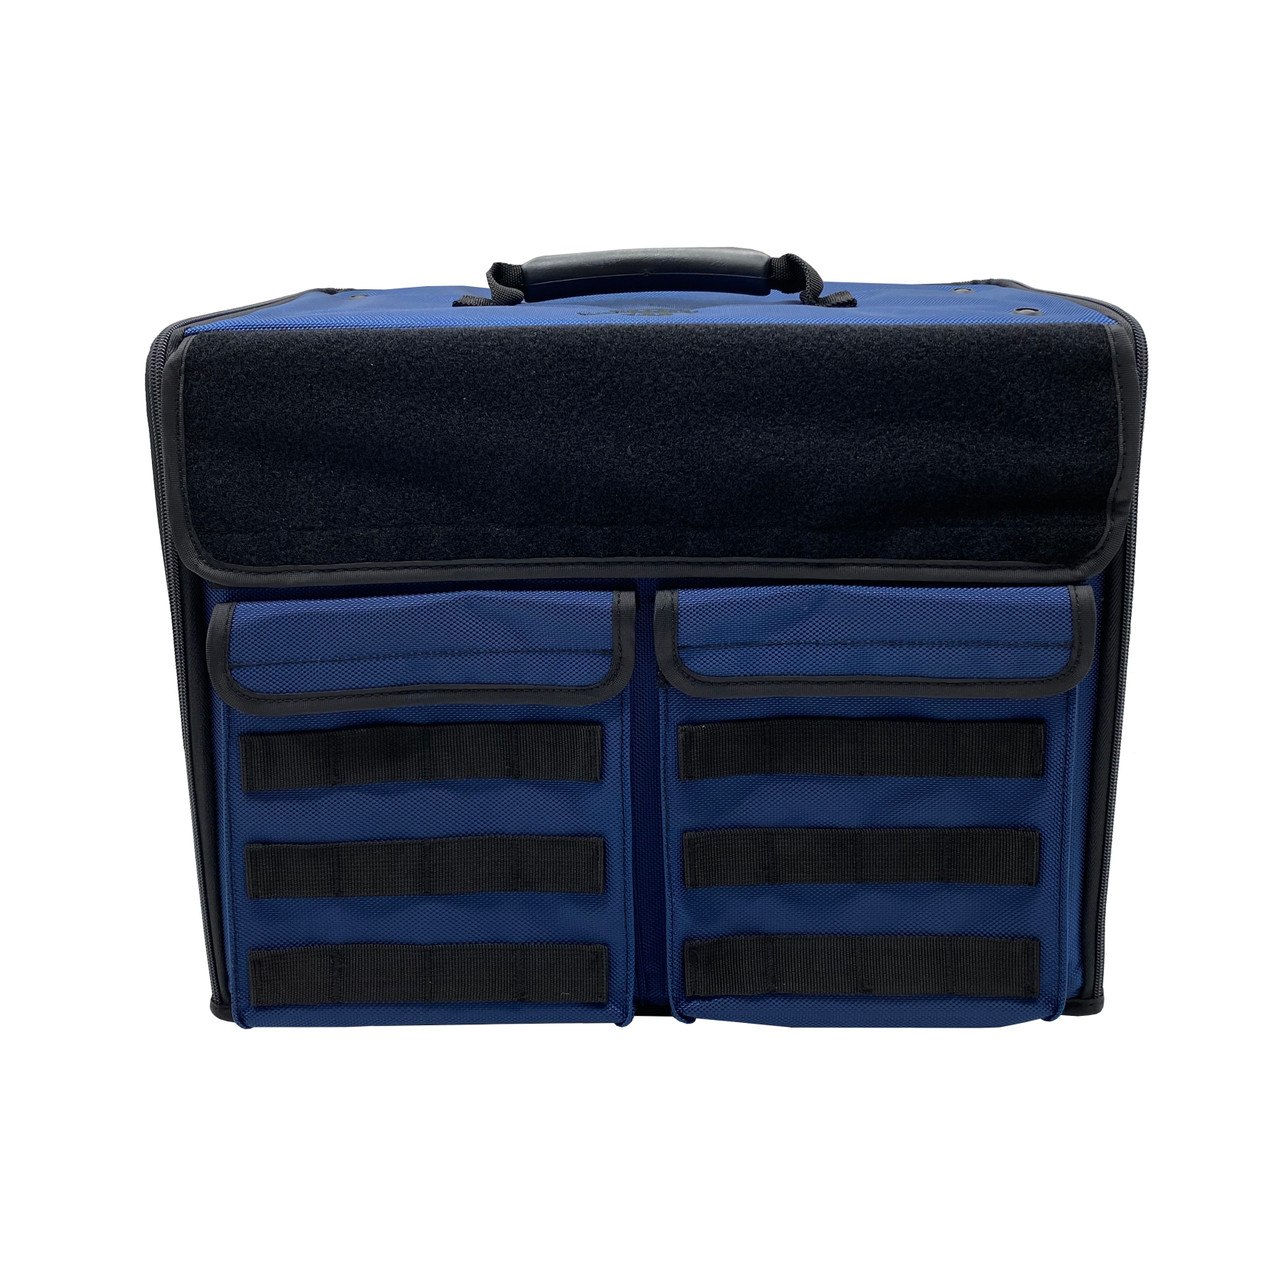 432 P A C K 432 Molle Horizontal Custom Load Out Battle Foam You'll receive email and feed alerts. battle foam